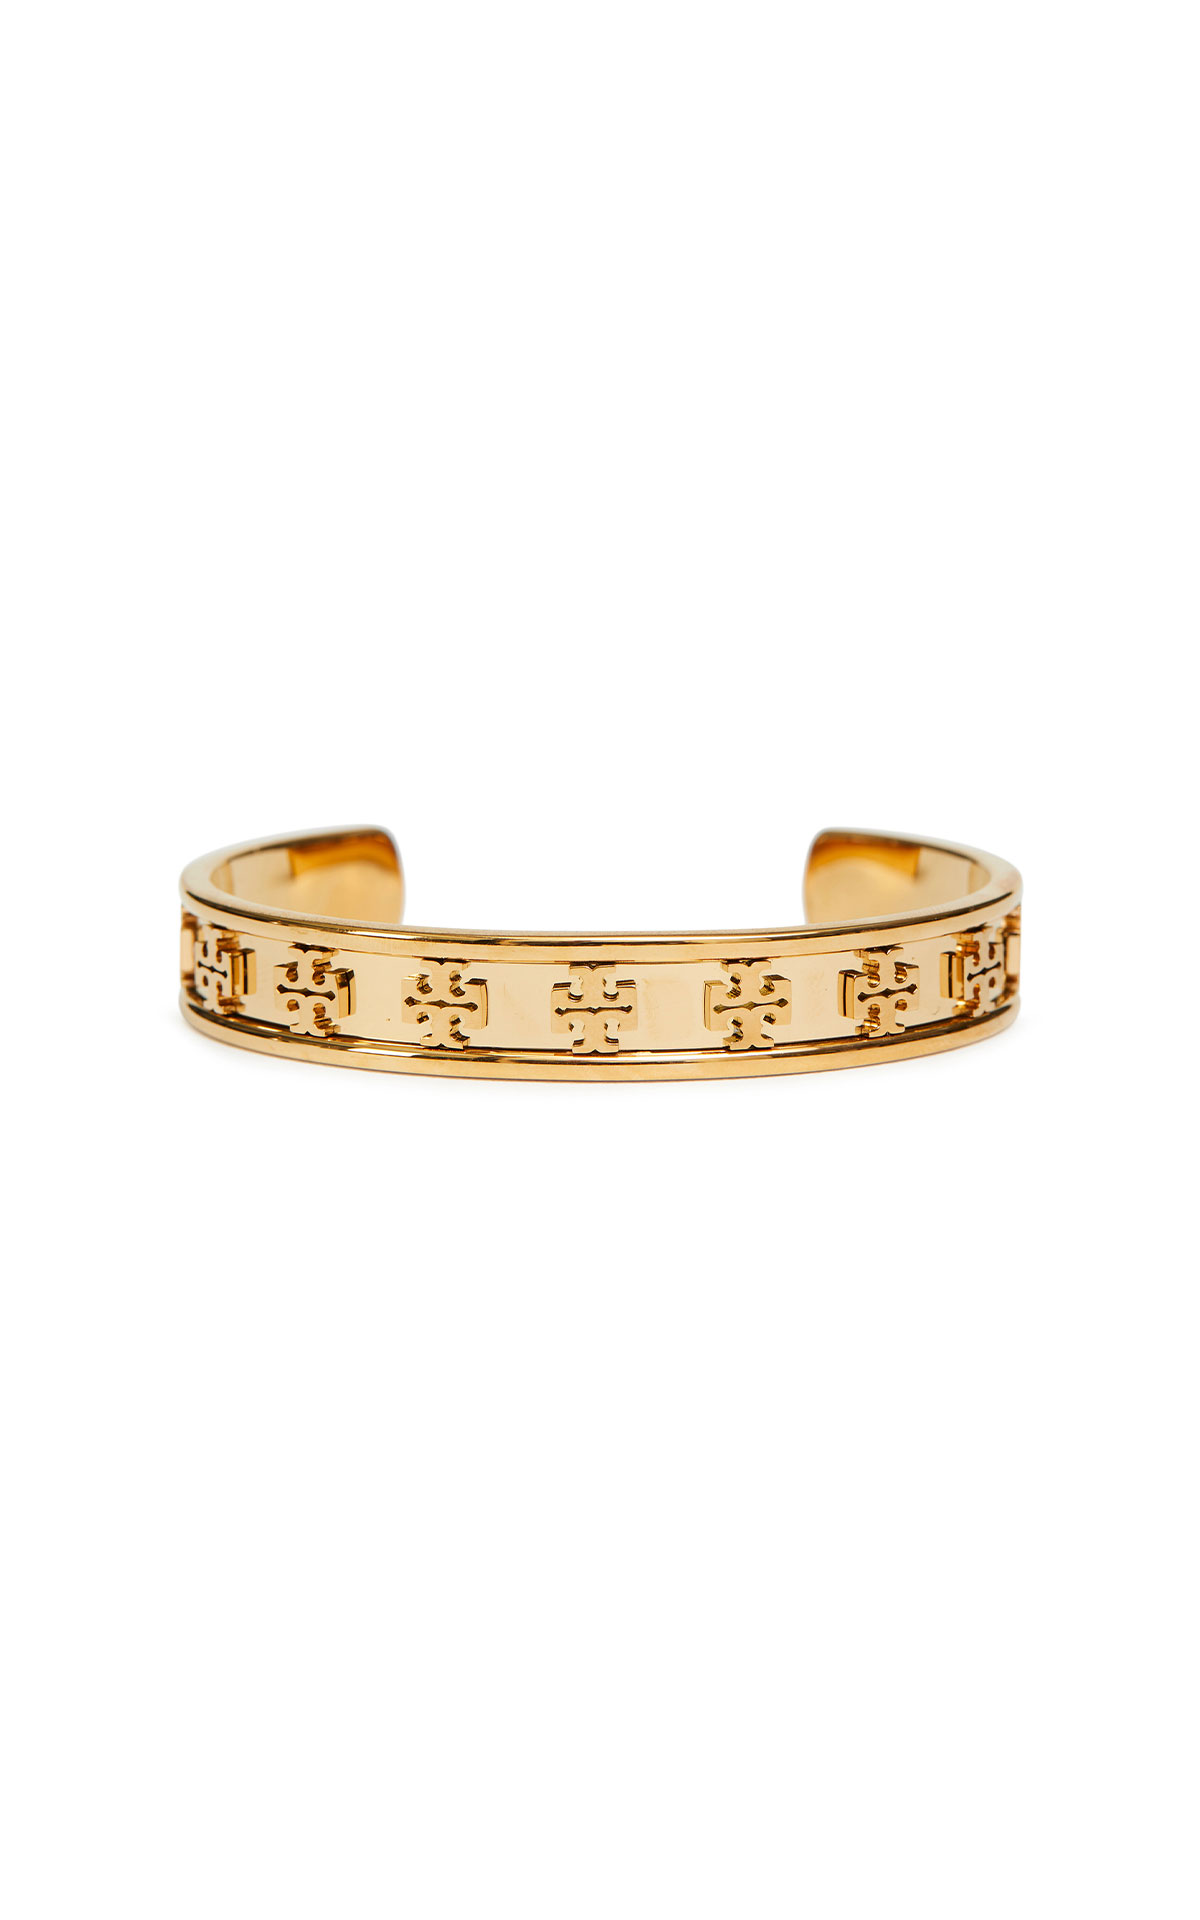 Tory Burch Raised logo cuff from Bicester Village